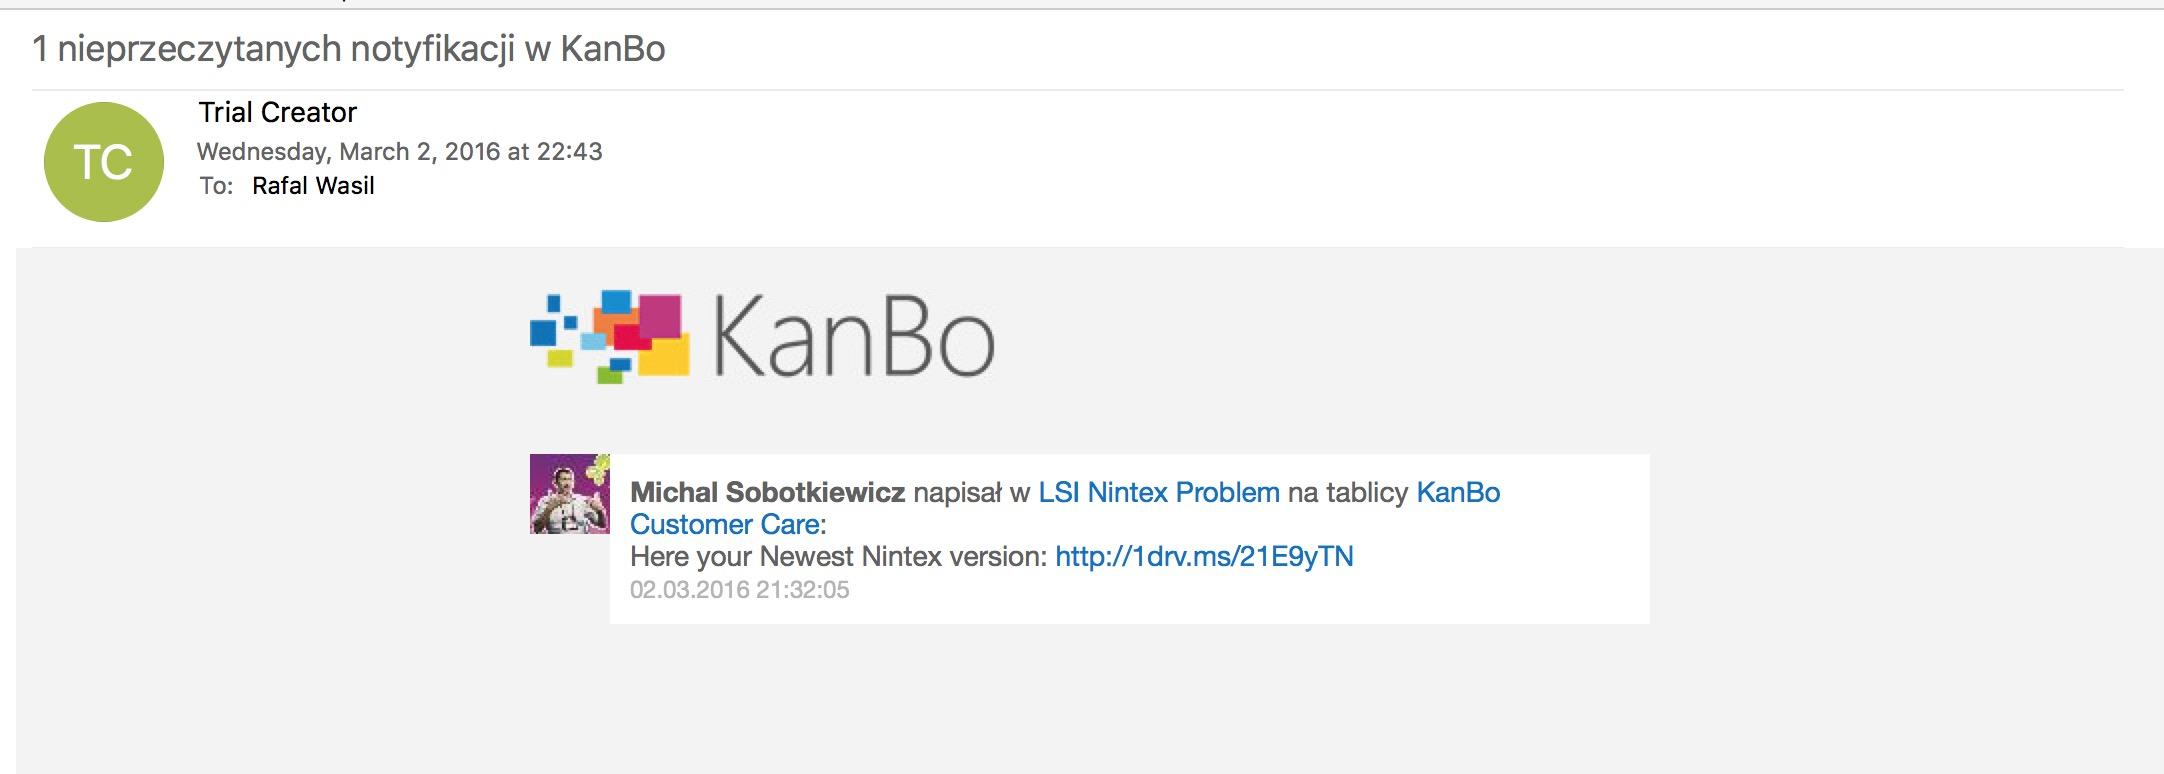 Turn on email notifications on KanBo